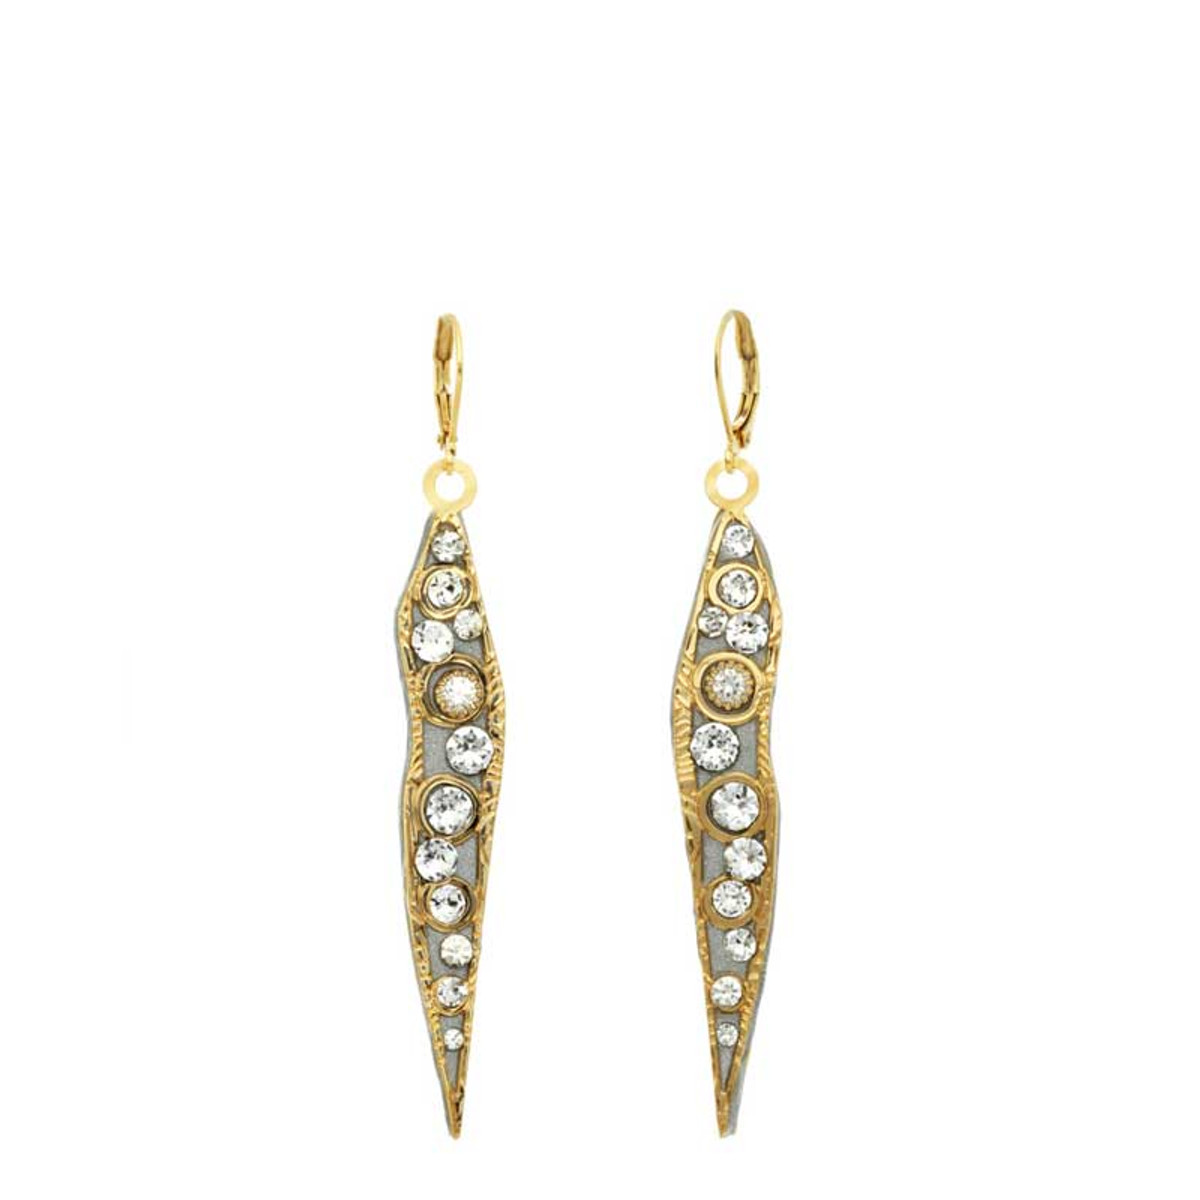 Michal Golan Jewelry Icicle Gold Earrings